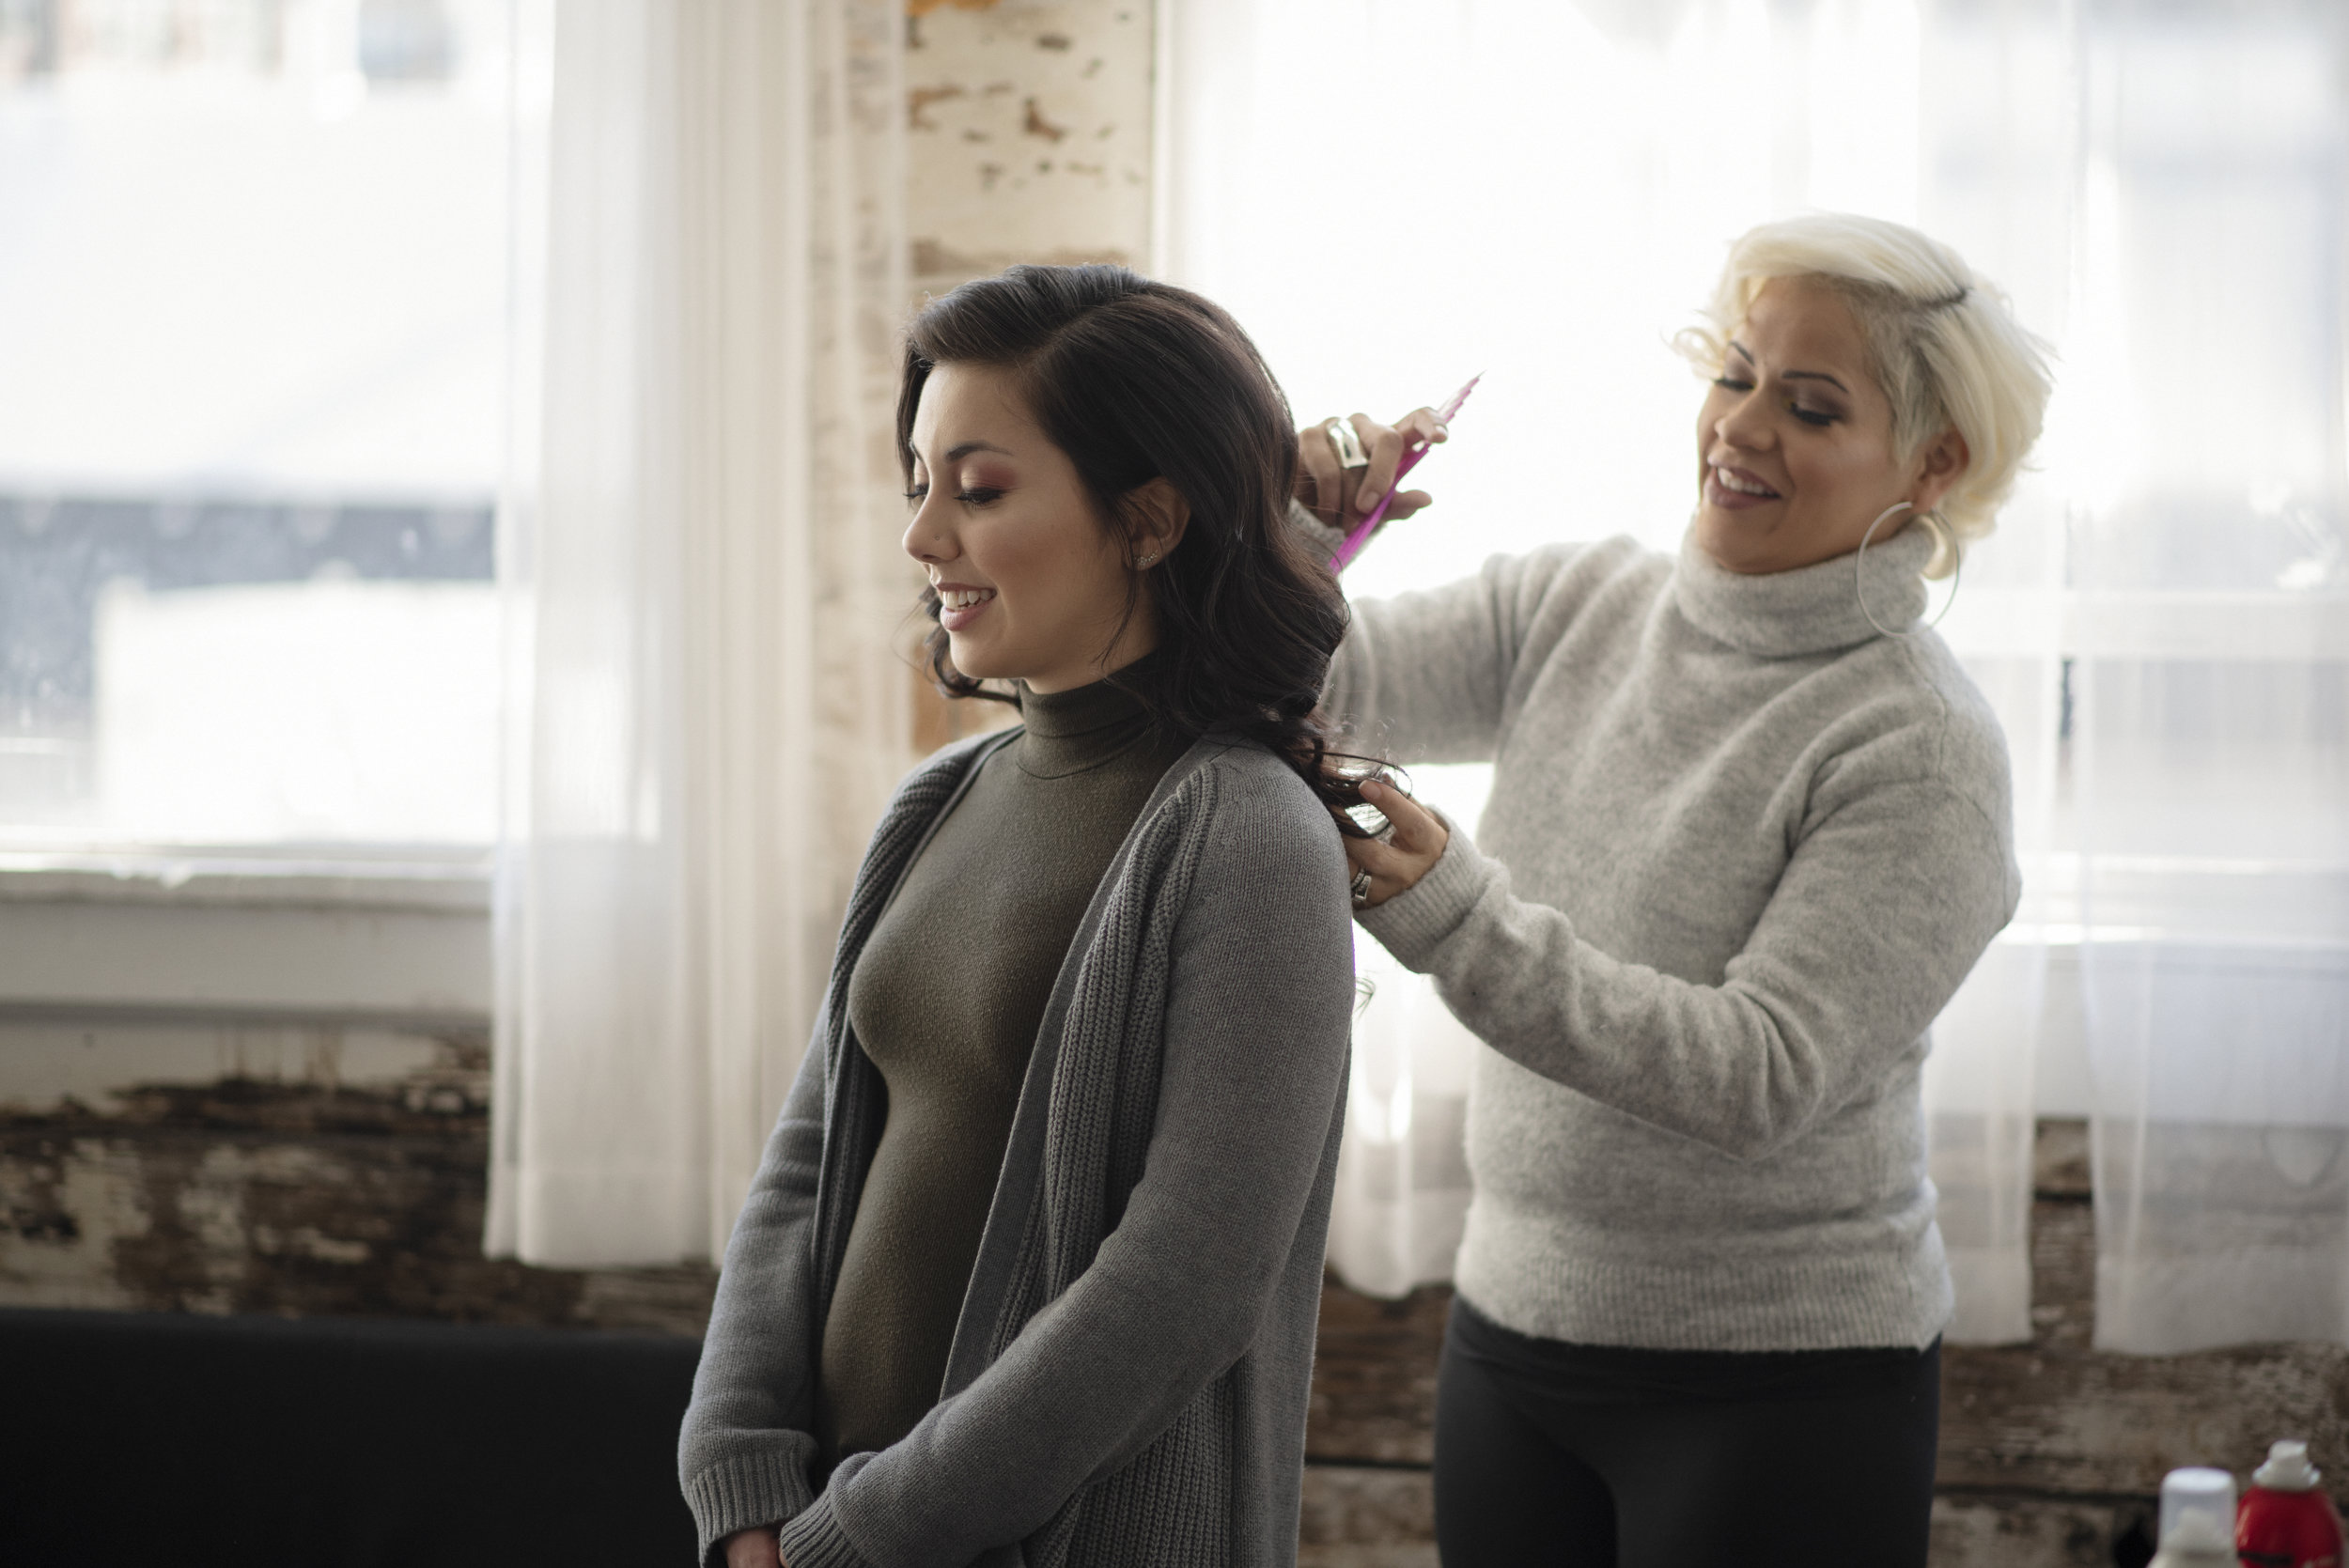 Stephanie getting some final hair touch-ups from Magali, who is an insanely talented hair stylist!